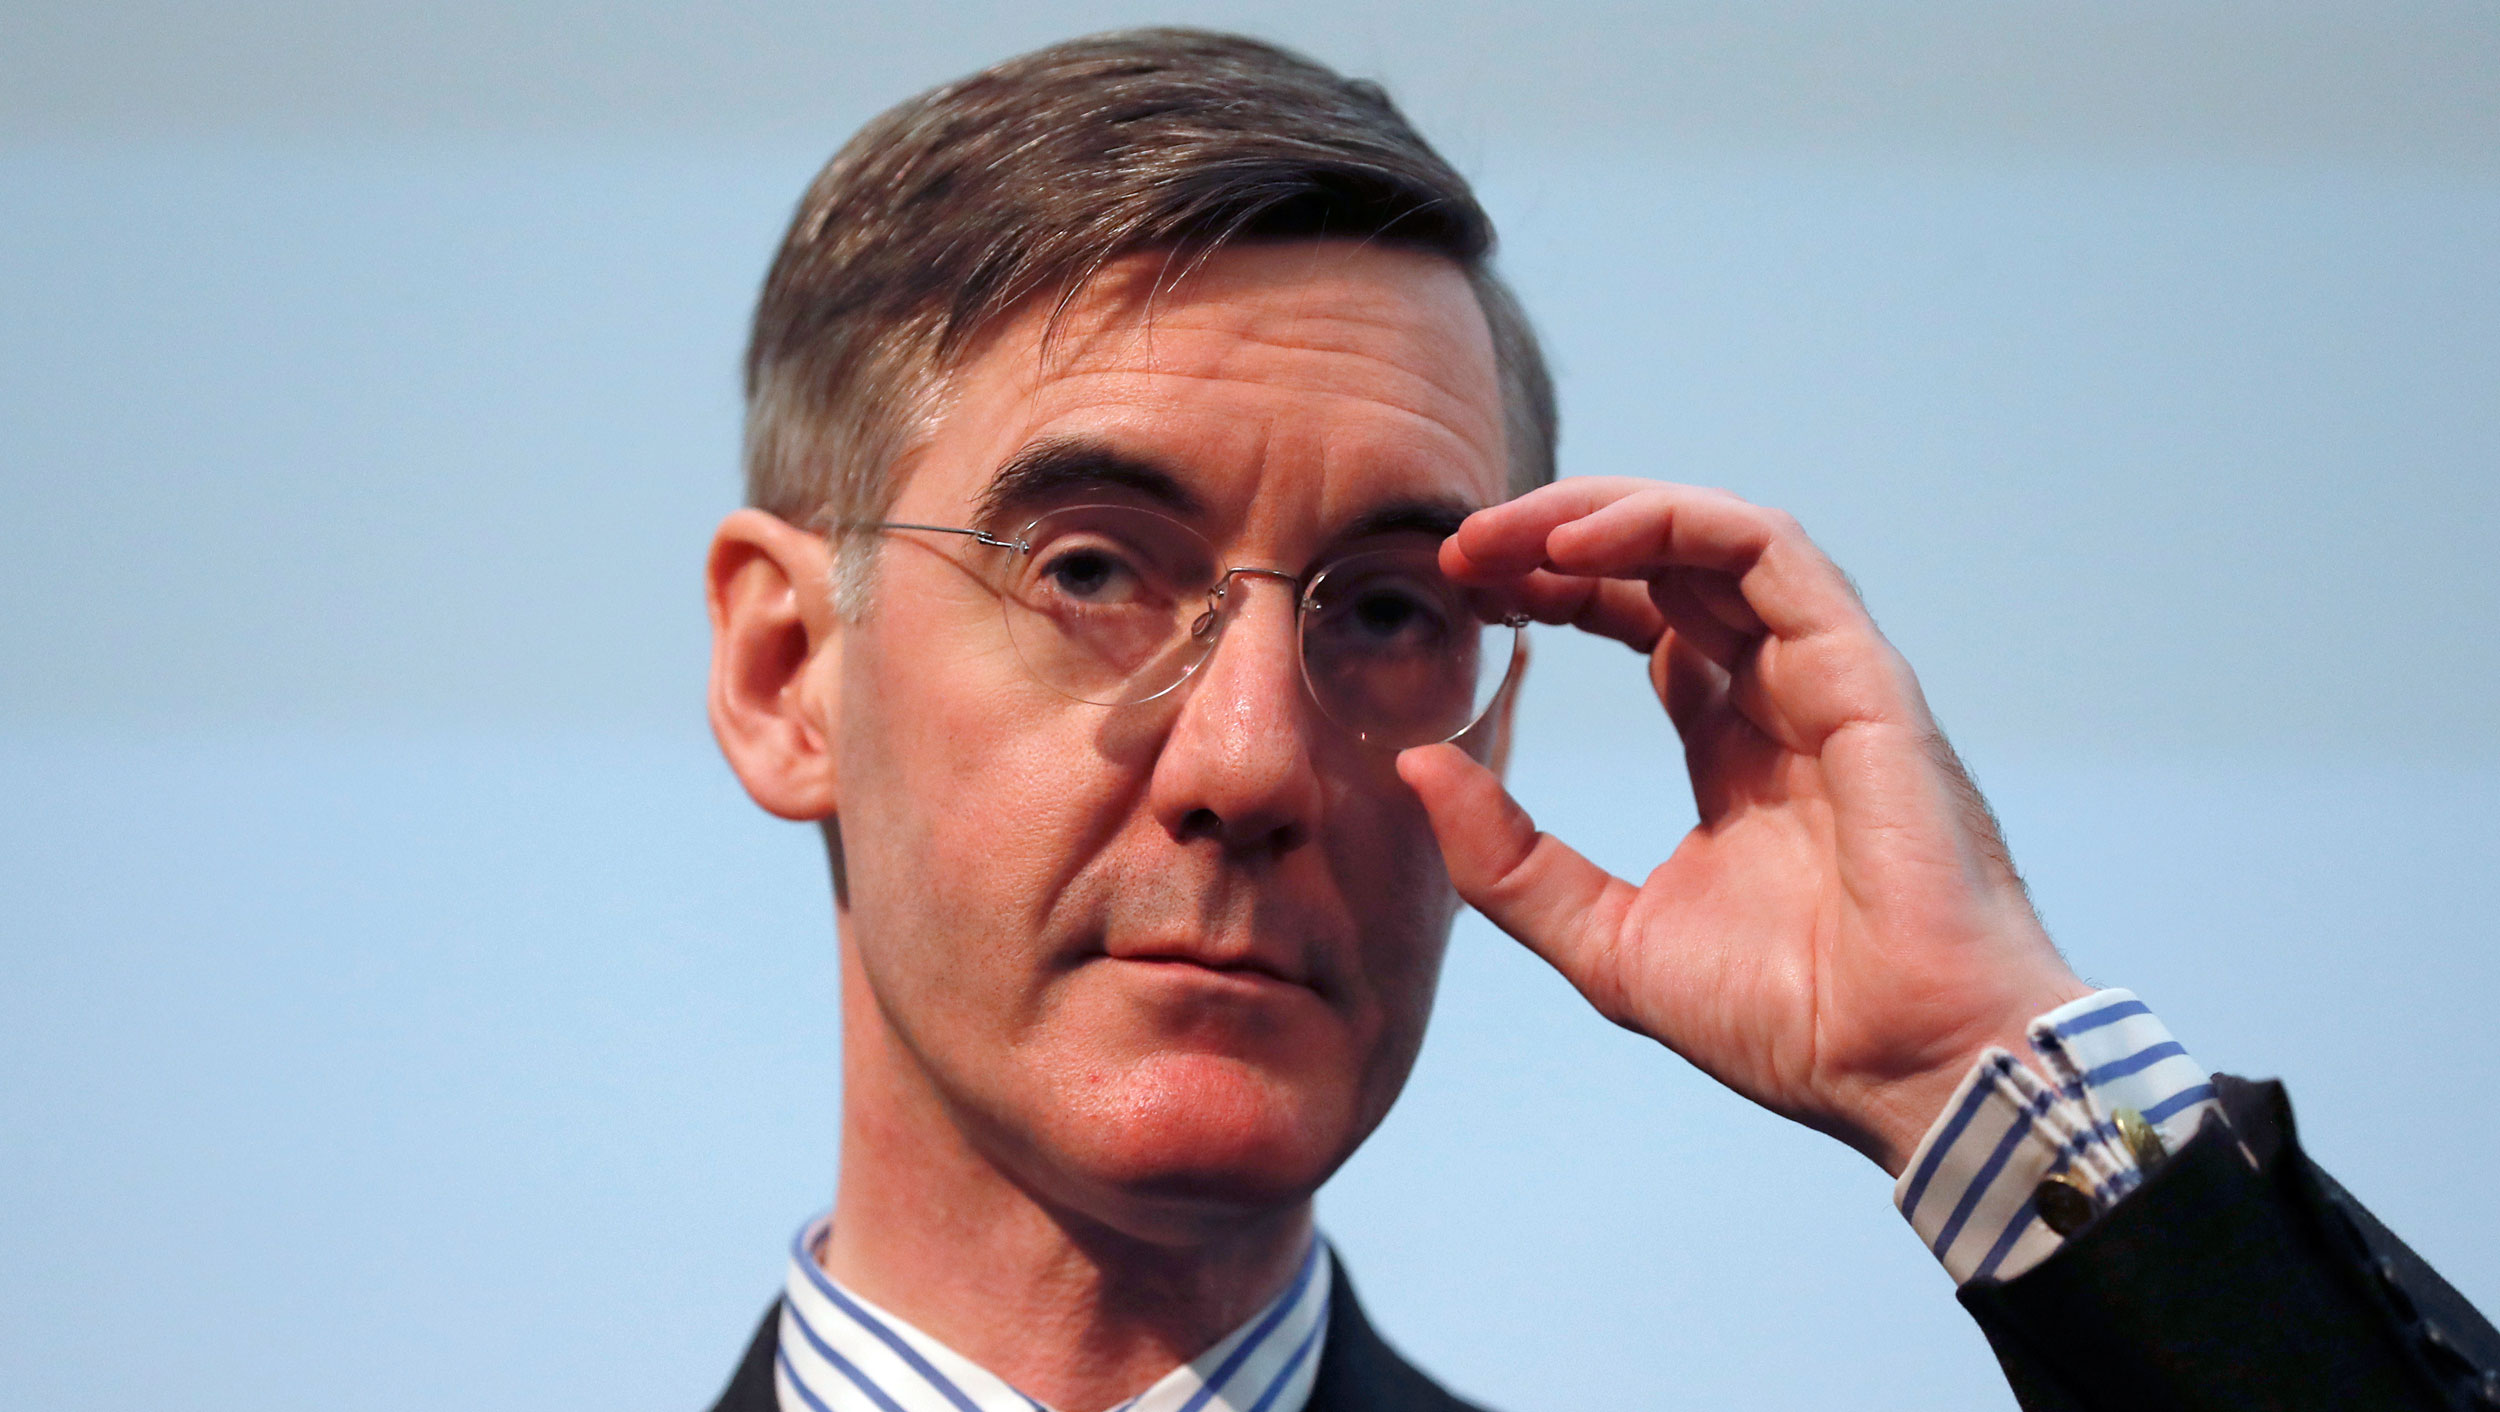 In this January 23, 2019, file photo, Jacob Rees-Mogg speaks at a meeting for eurosceptic think tank The Bruges group, in London.